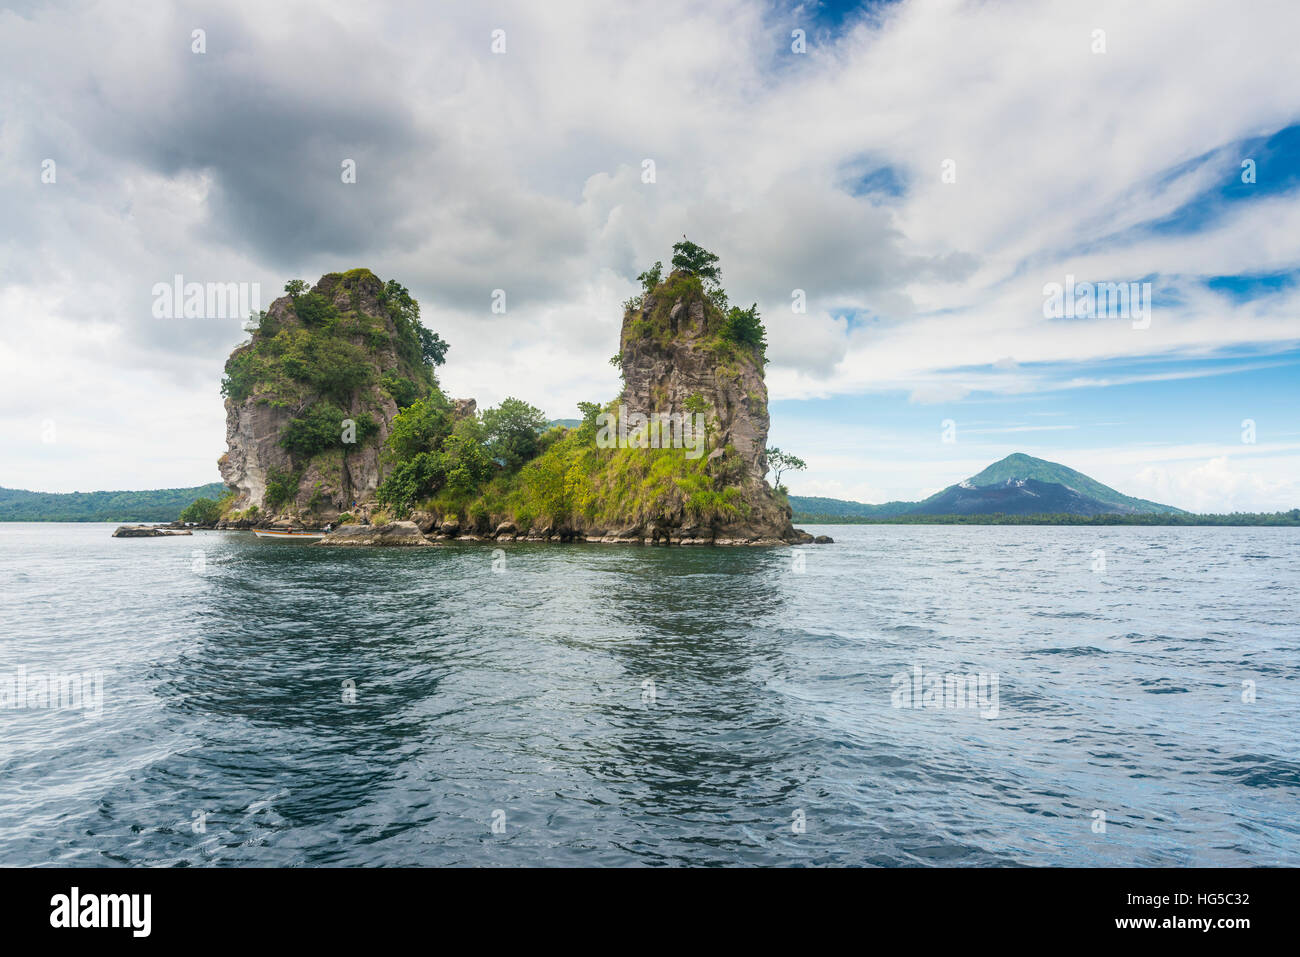 The Beehives (Dawapia Rocks) in Simpson Harbour, Rabaul, East New Britain, Papua New Guinea, Pacific - Stock Image